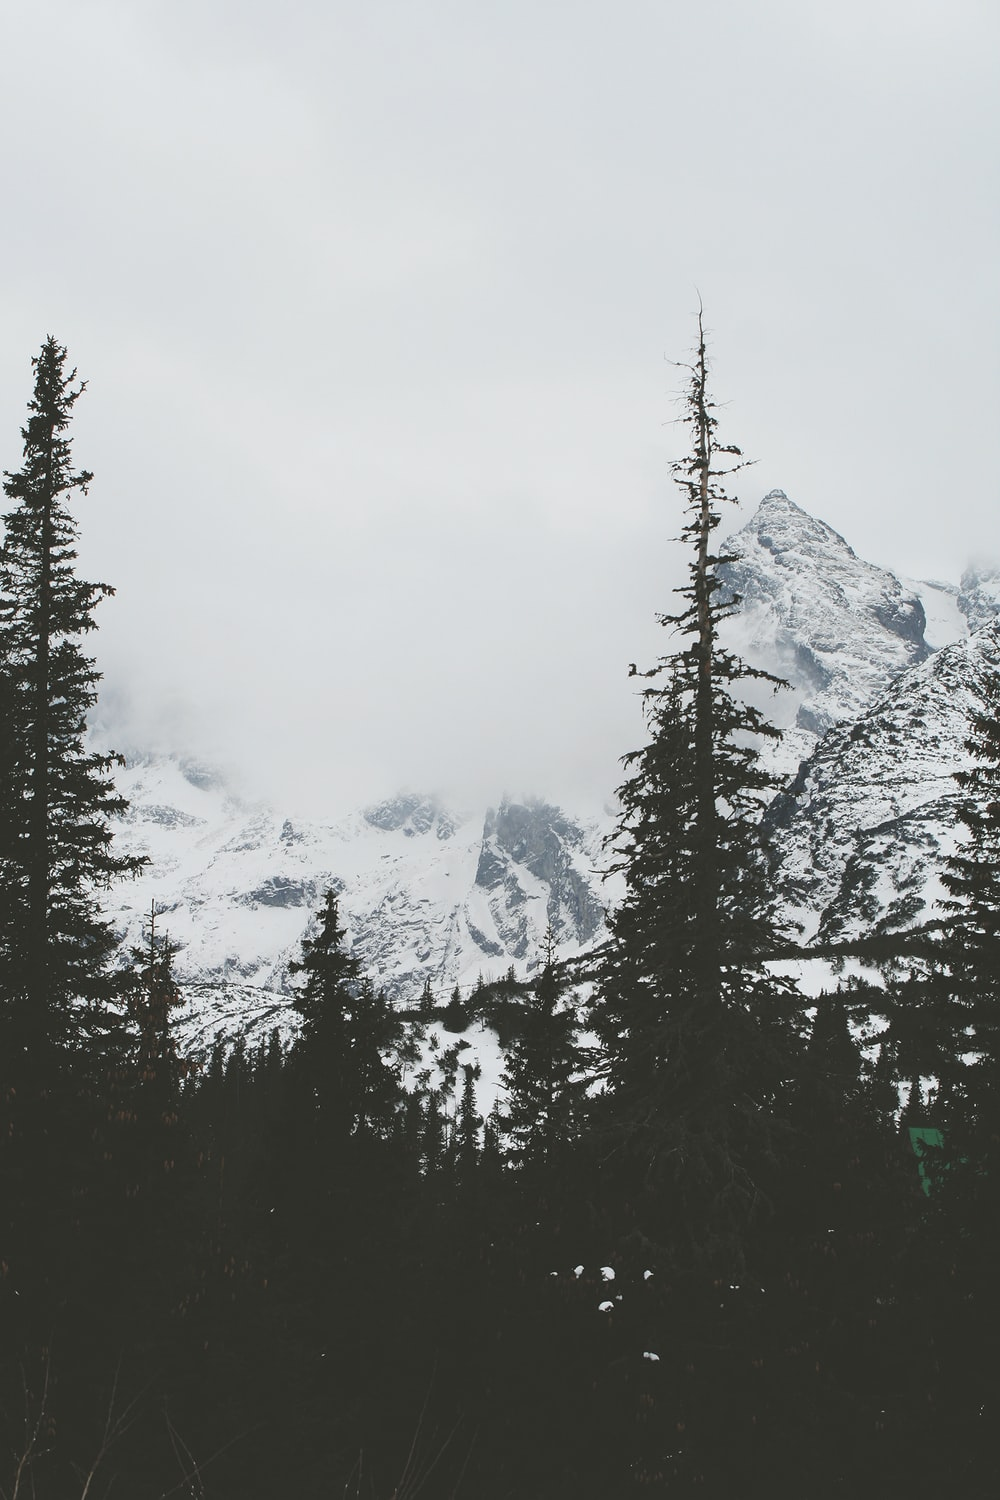 silhouette of trees and snowy mountains